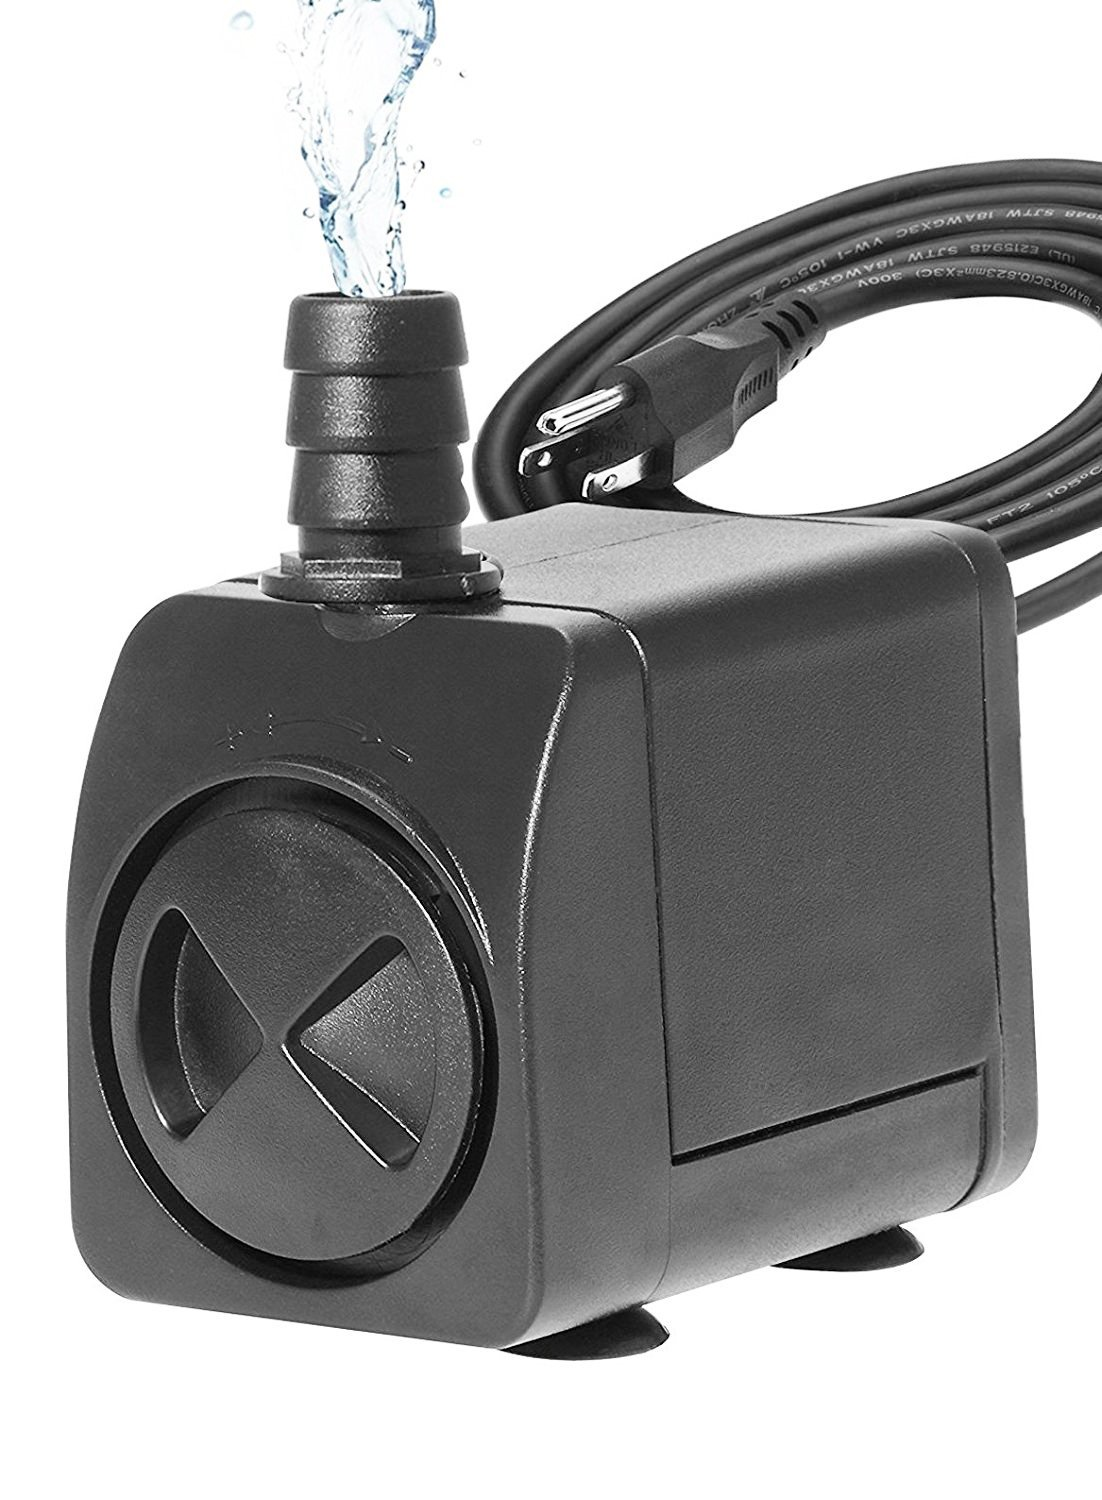 Esky 260 GPH Submersible Pump with Adjustable Flow Rate for Aquariums Tanks Ponds and Fountains